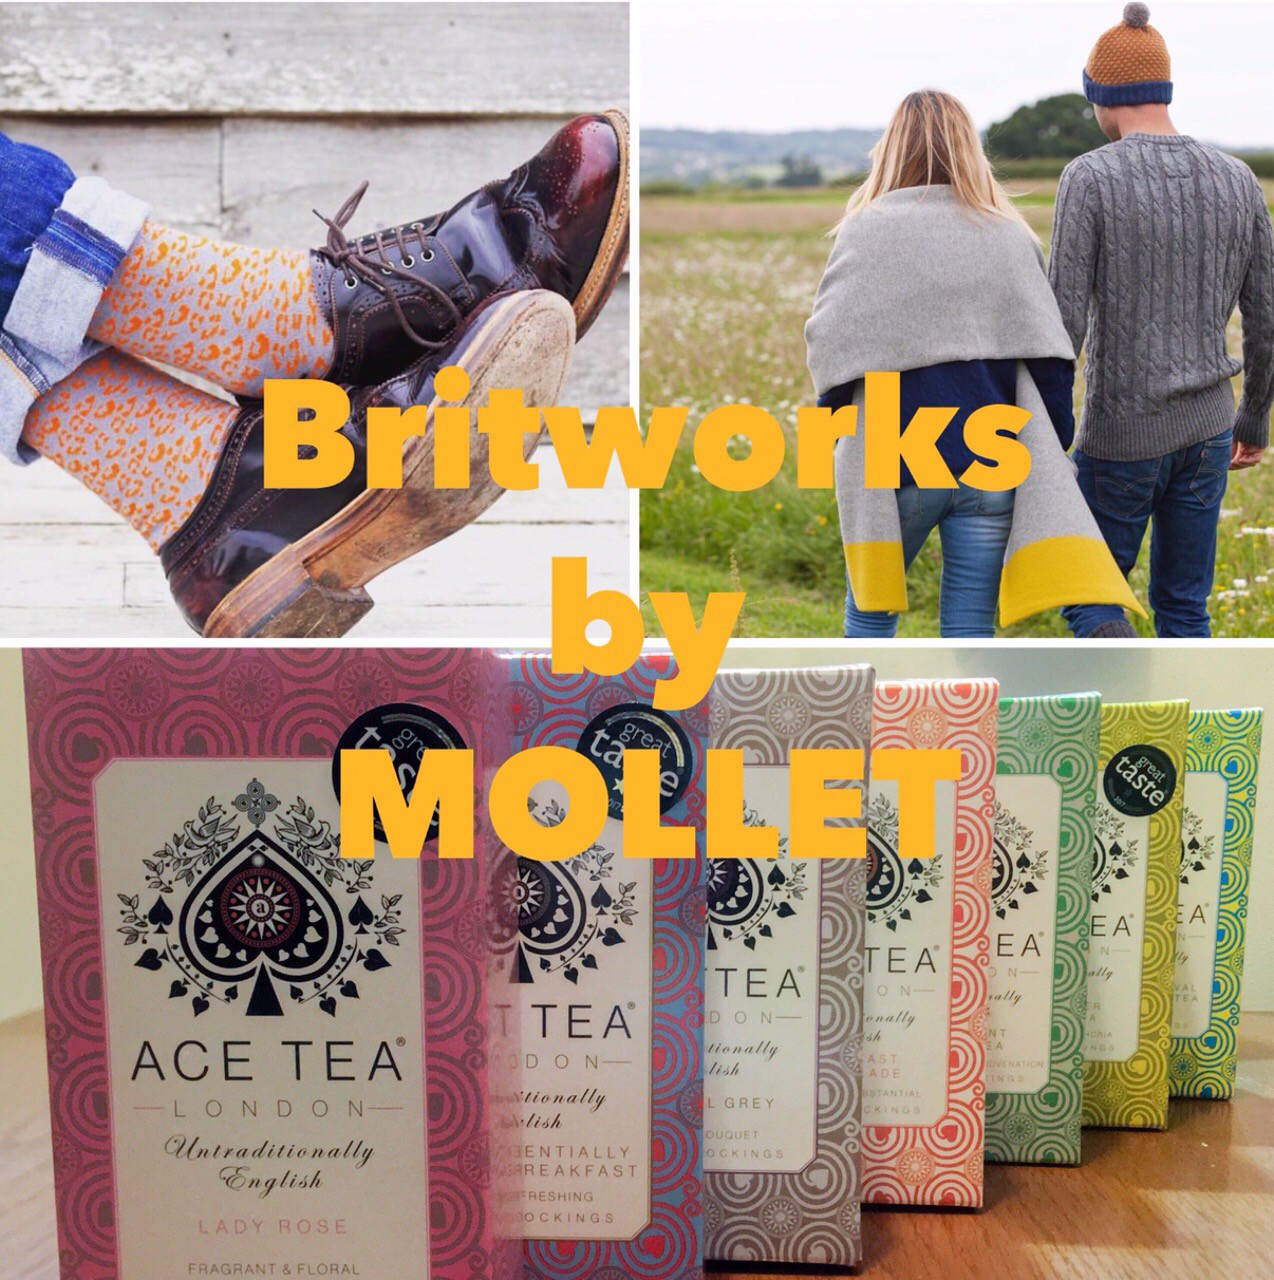 Britworks by MOLLET